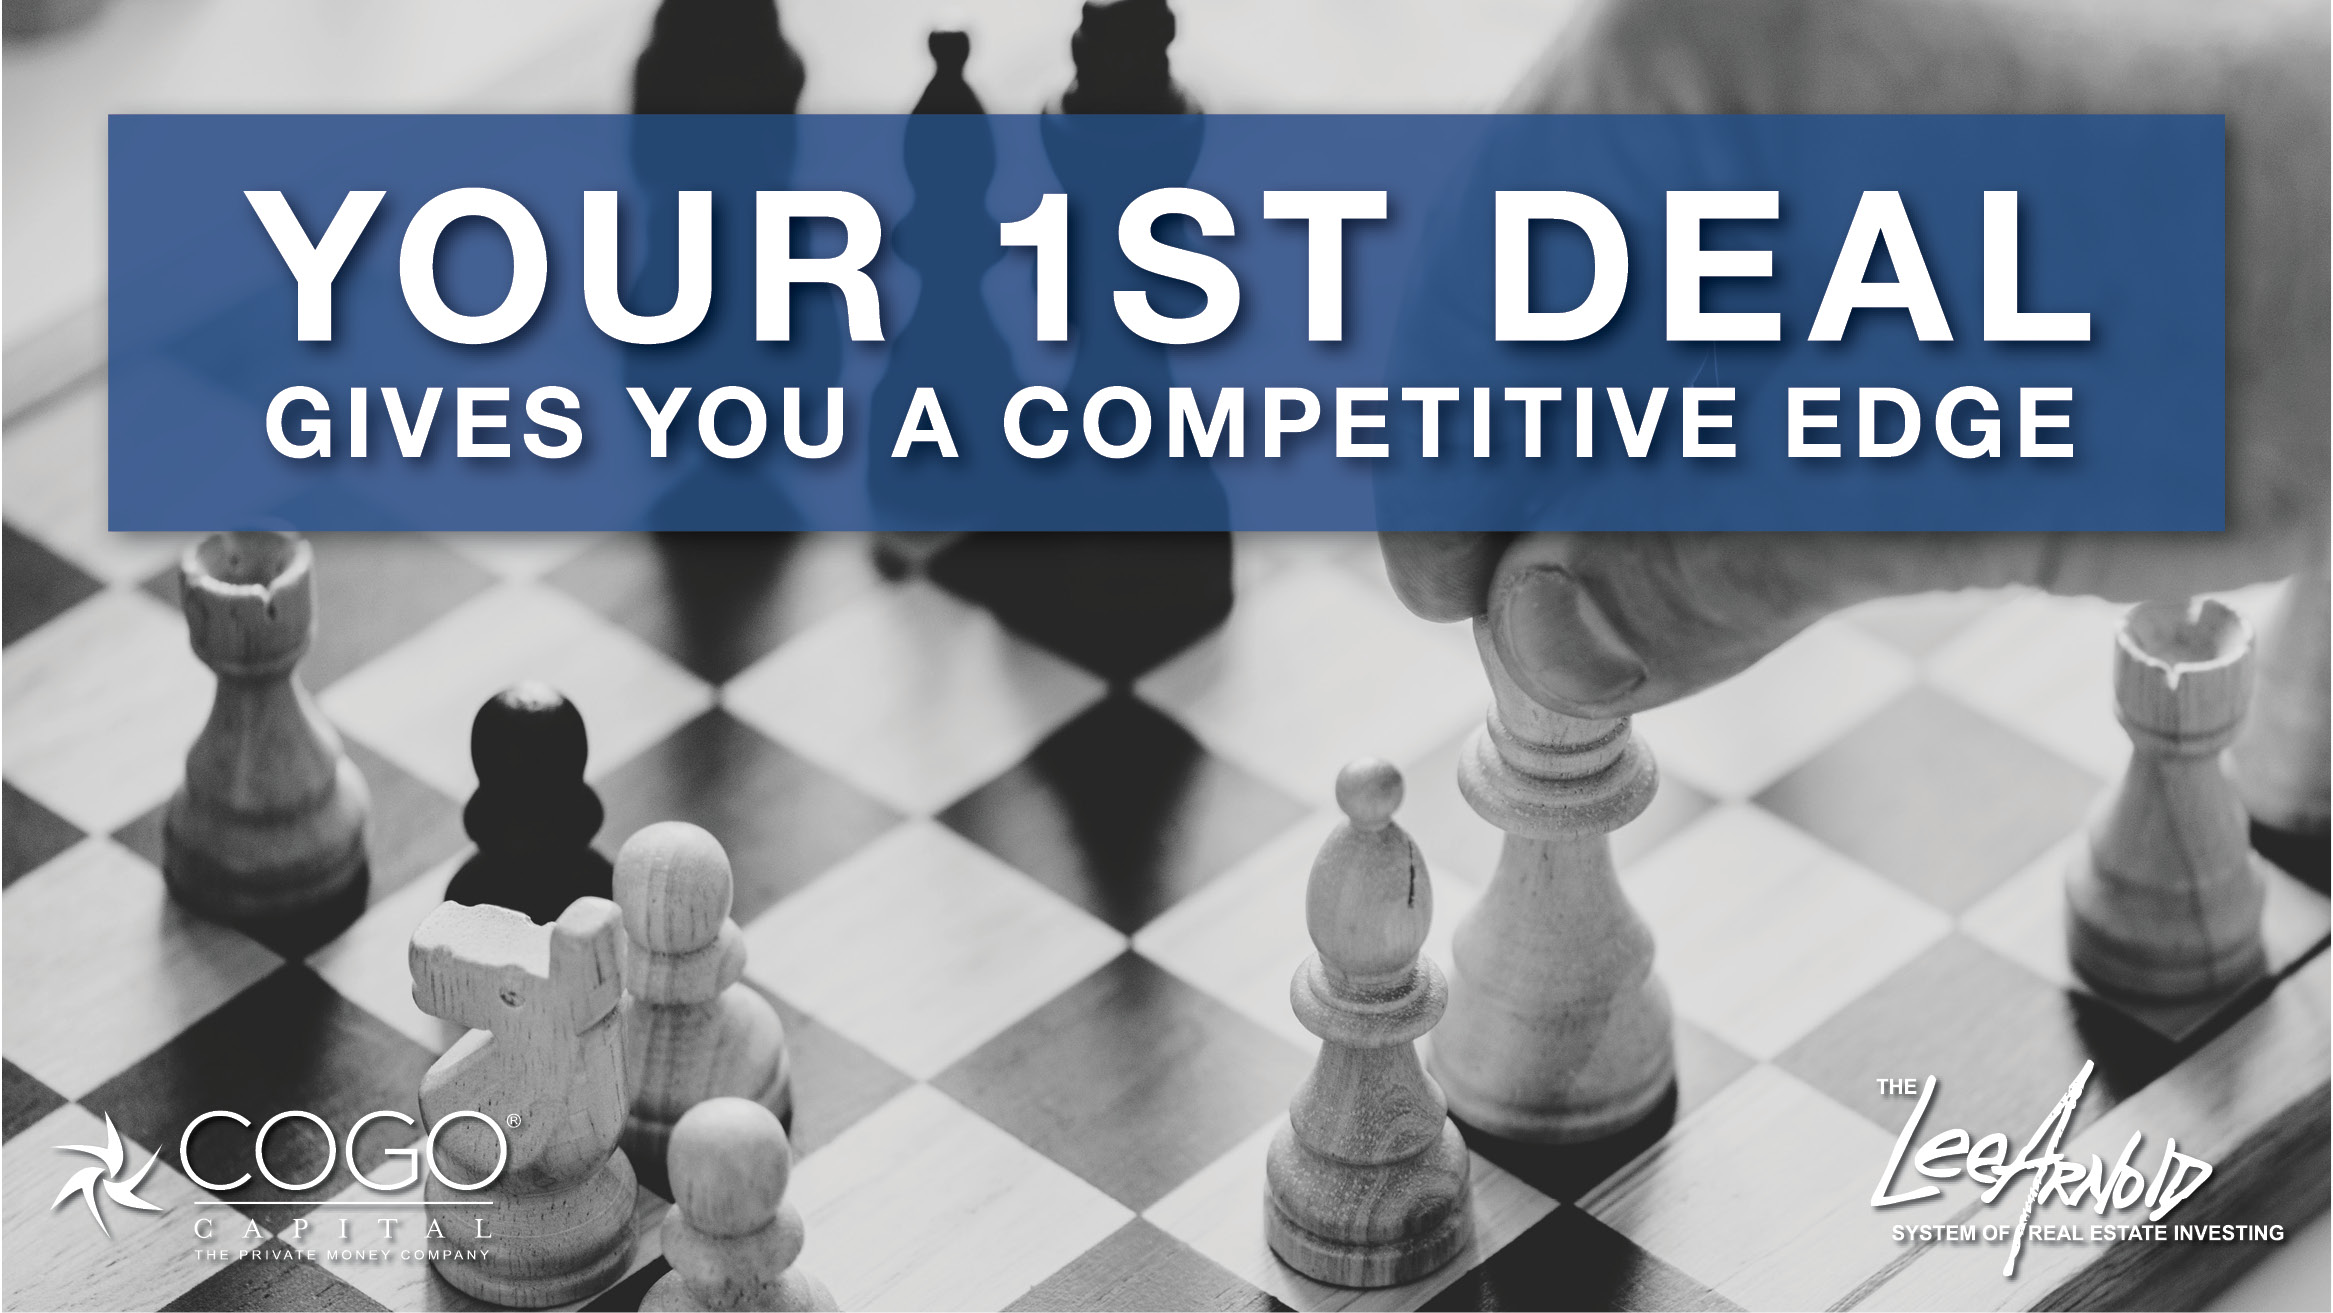 Your 1st Deal Gives You a Competitive Edge